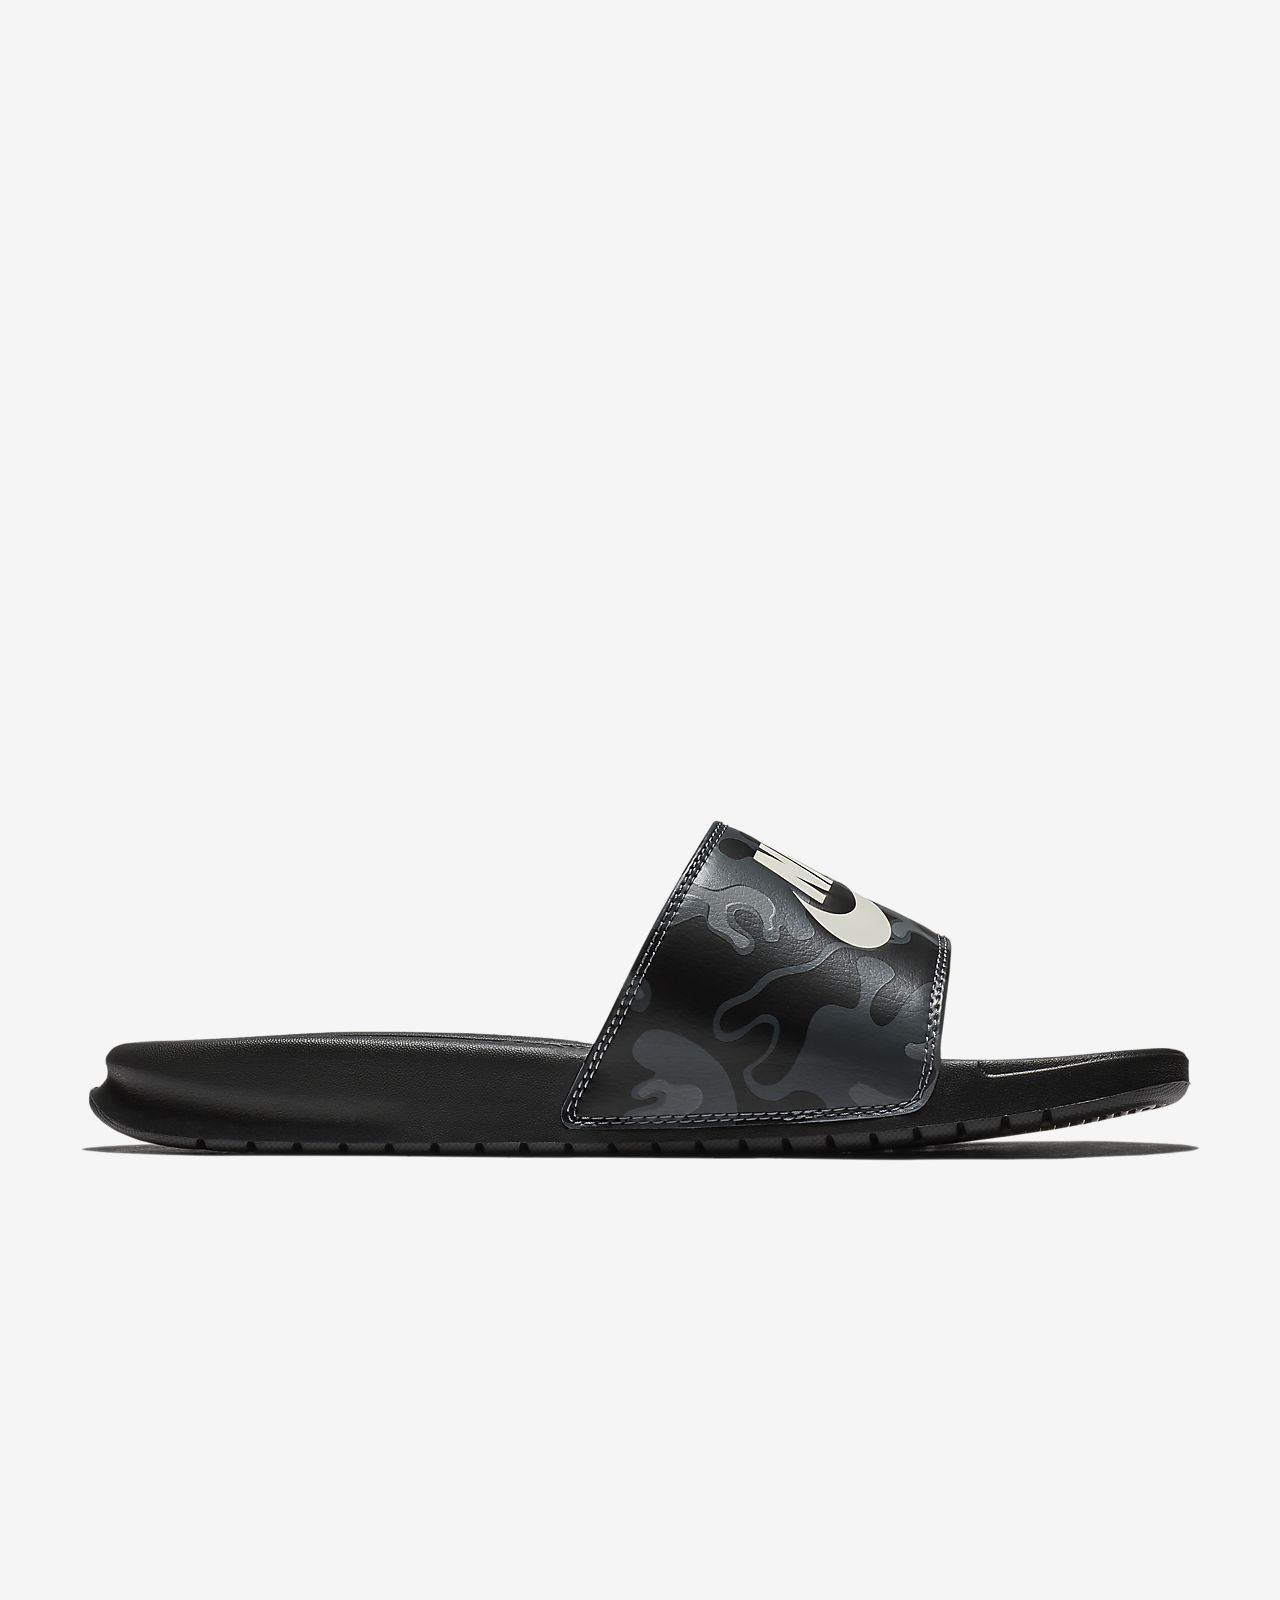 check out 249d4 a30f4 ... Claquette Nike Benassi JDI Printed pour Homme